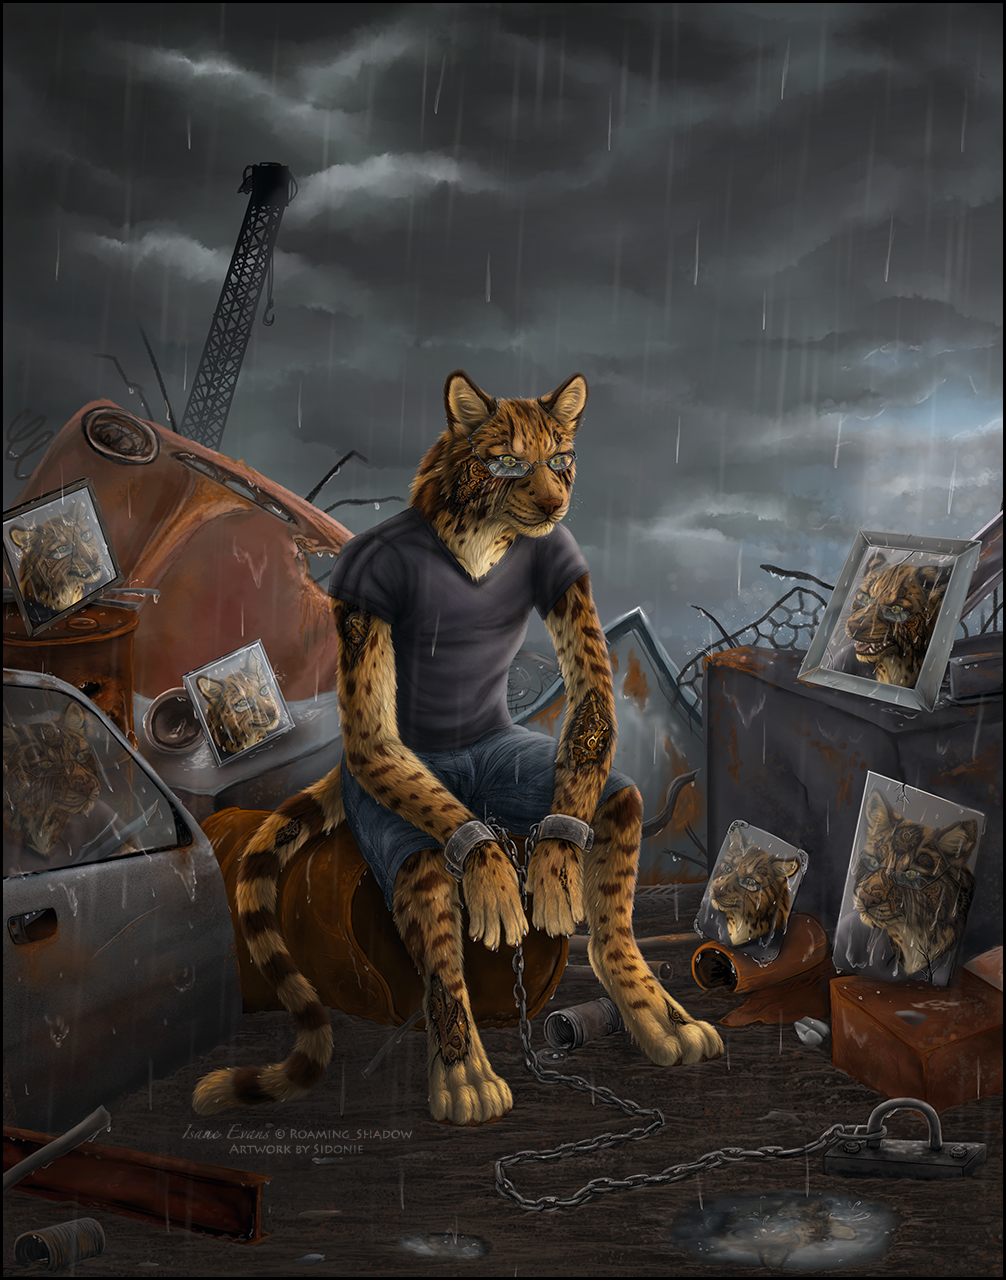 We are Rusted from the Rain by Sidonie